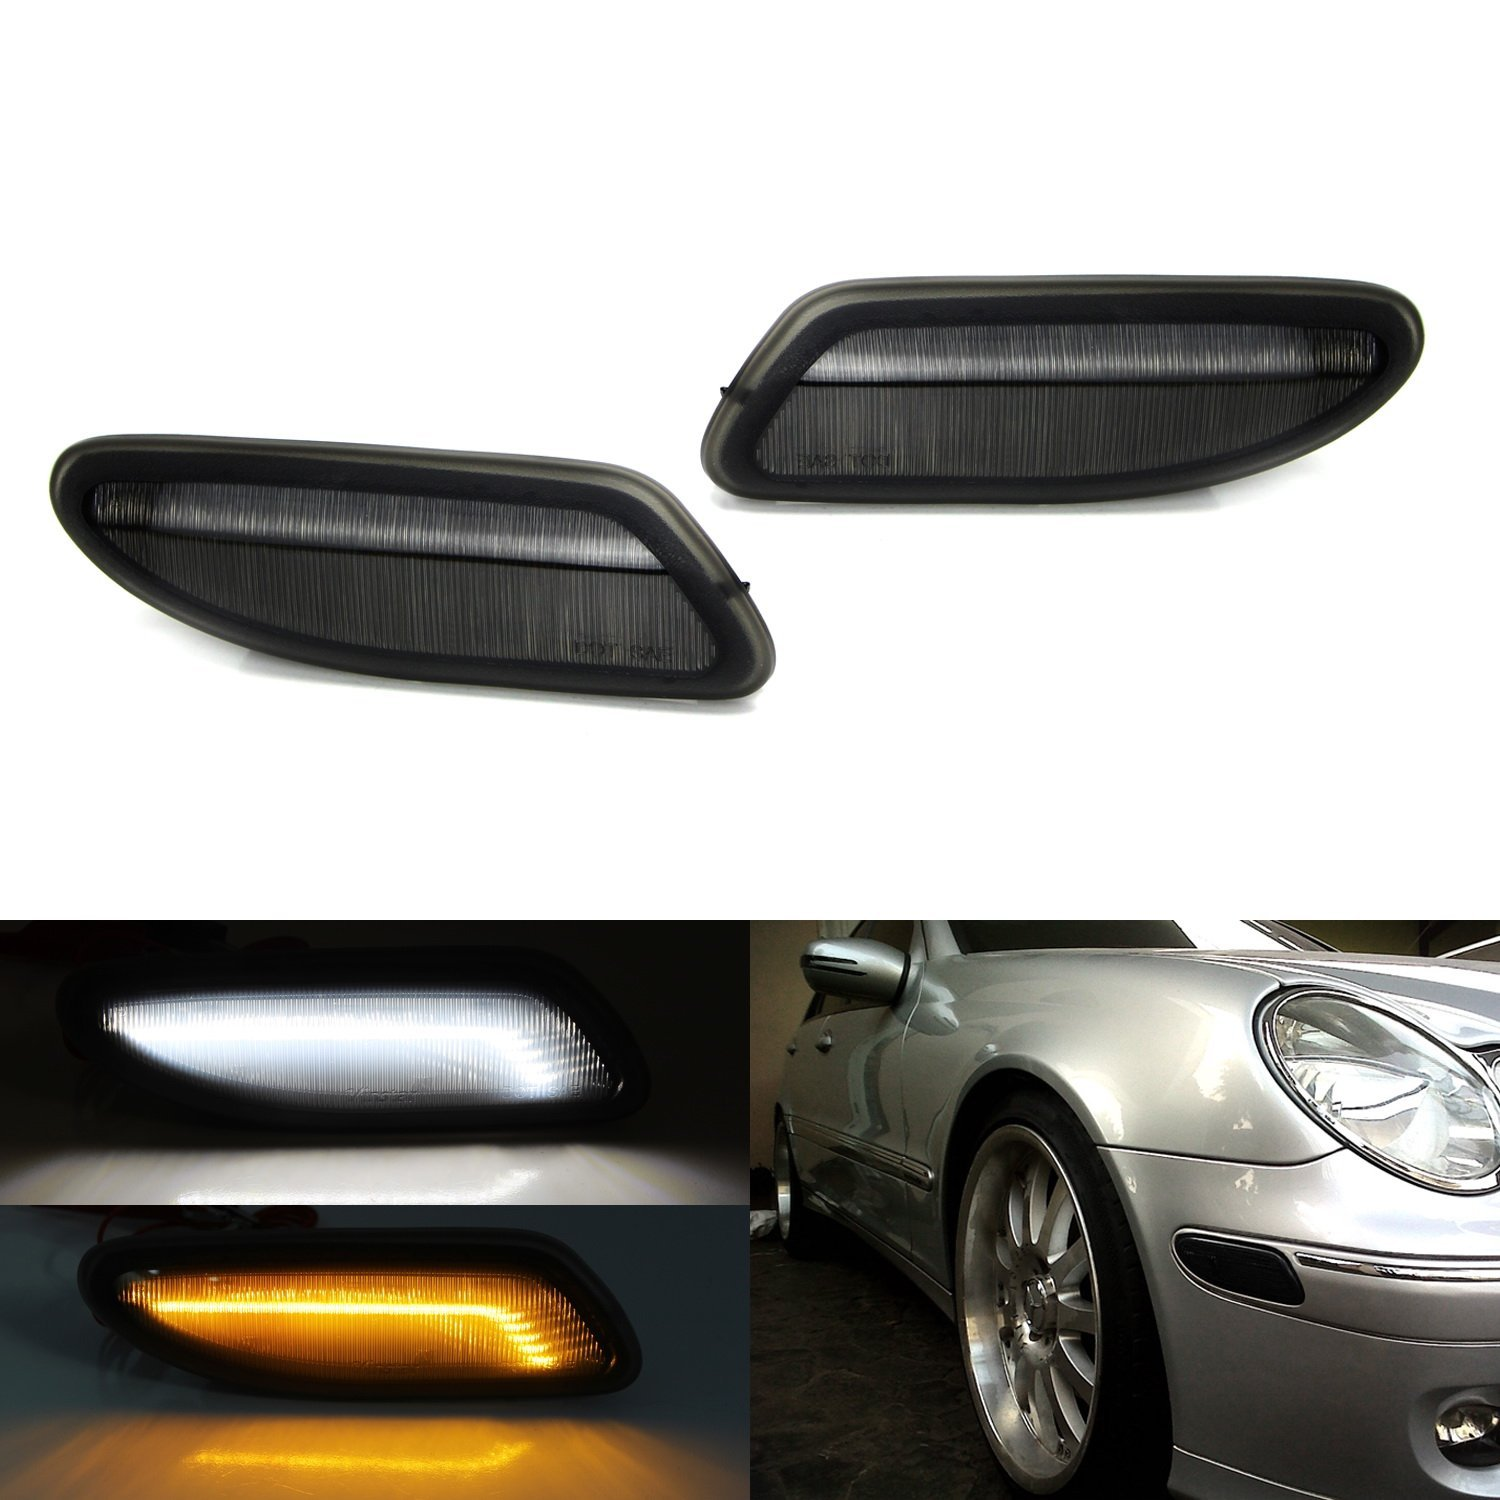 iJDMTOY (2) Euro Smoked Lens Amber LED Side Marker Lights Fit 2001-2007 Mercedes W203 C-Class Sedan